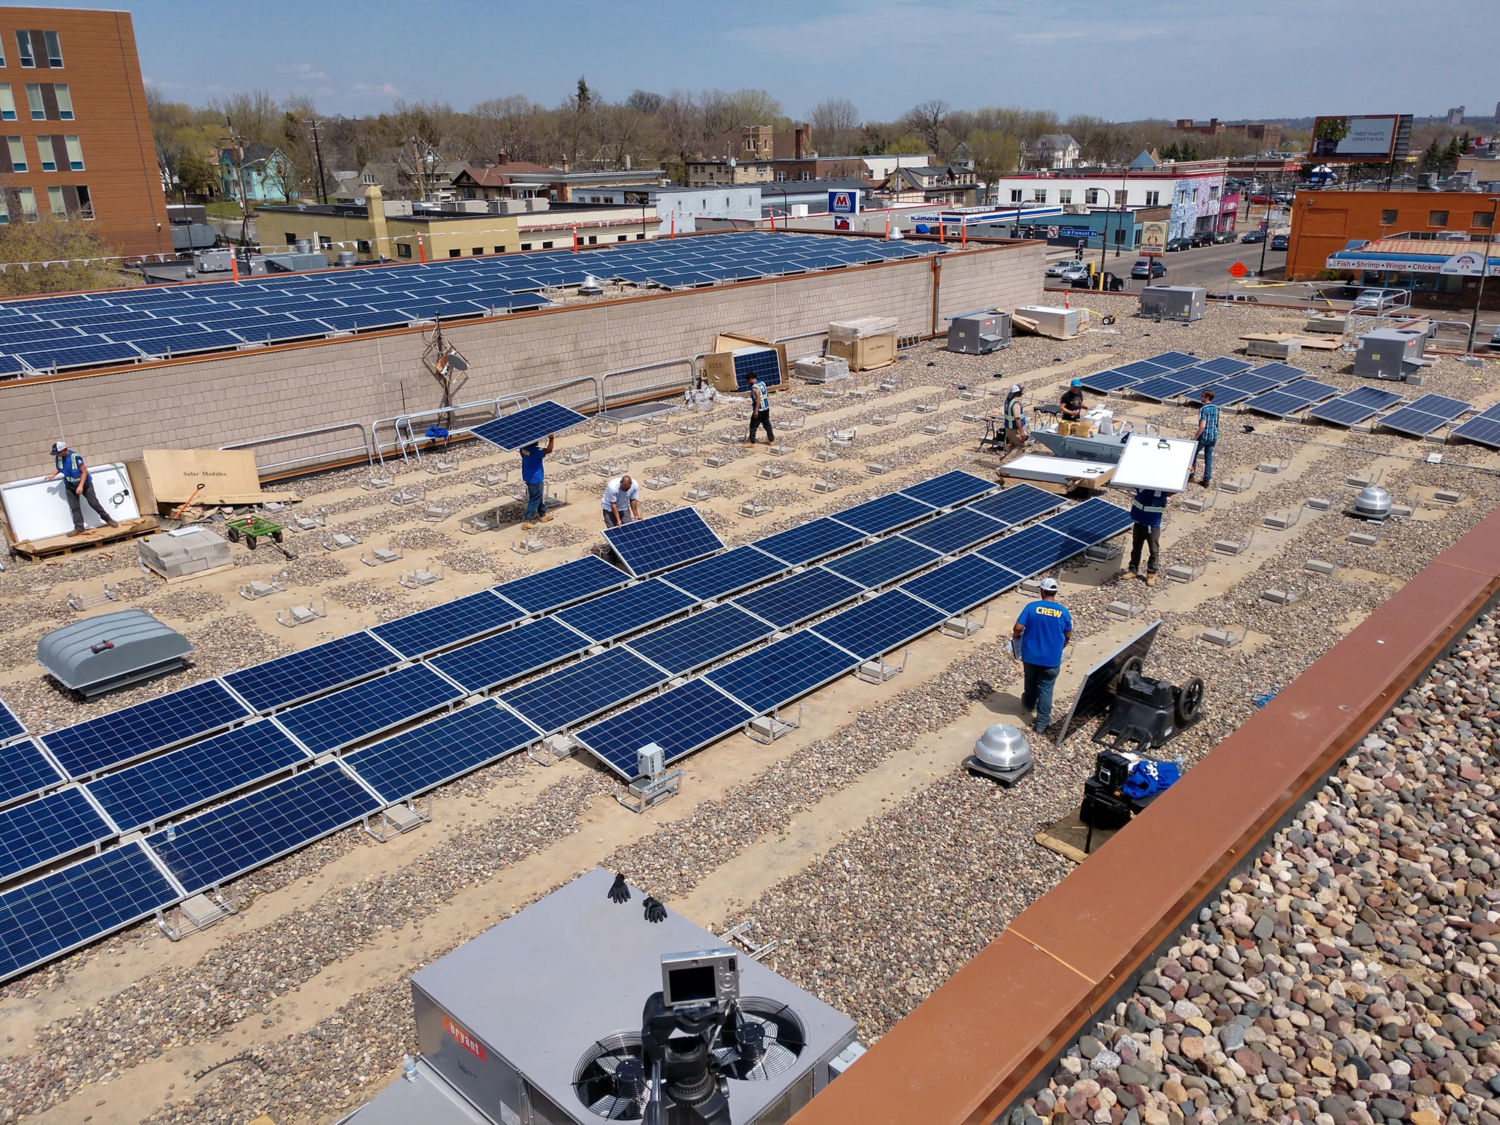 Energy Equity: Bringing Solar Power to Low-Income Communities - Yale